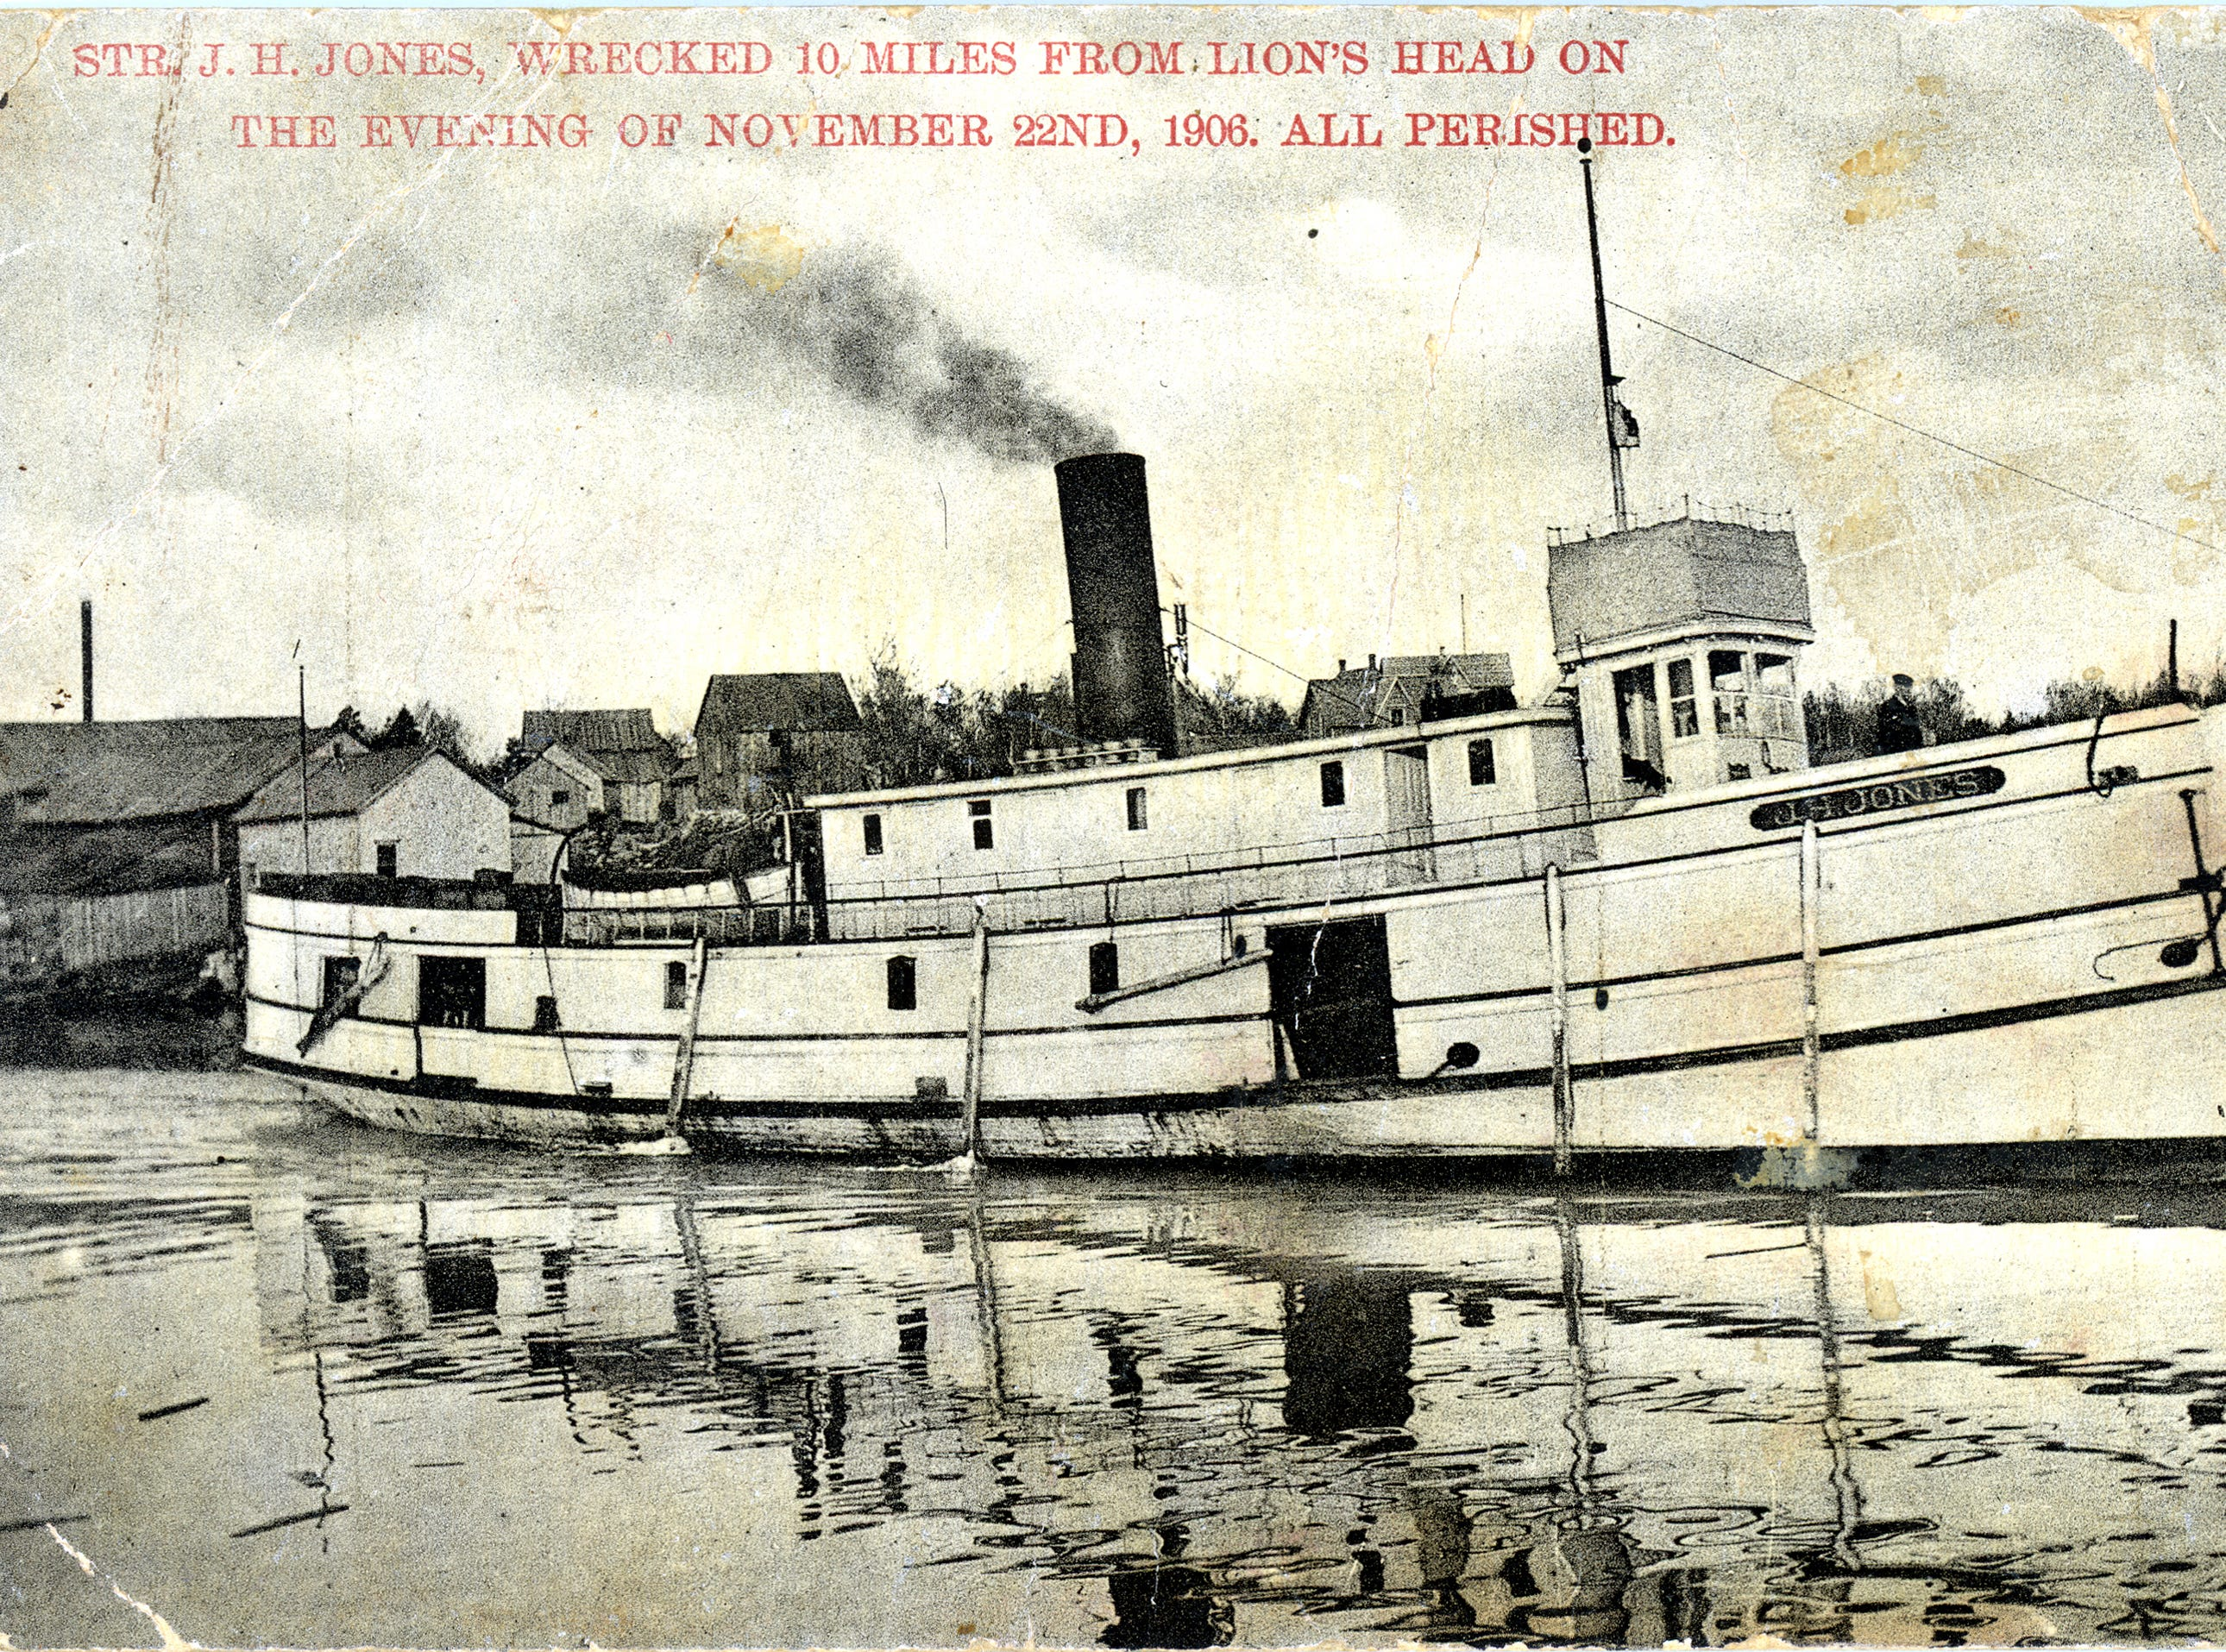 A postcard shows the coastal steamer J. H. Jones, operating out of Wiarton, Ontario, which sank with 17 passengers and a crew of 13 in a violent storm on Nov. 22, 1906. It was hauling a full cargo of general freight to Lion's Head, Ontario.